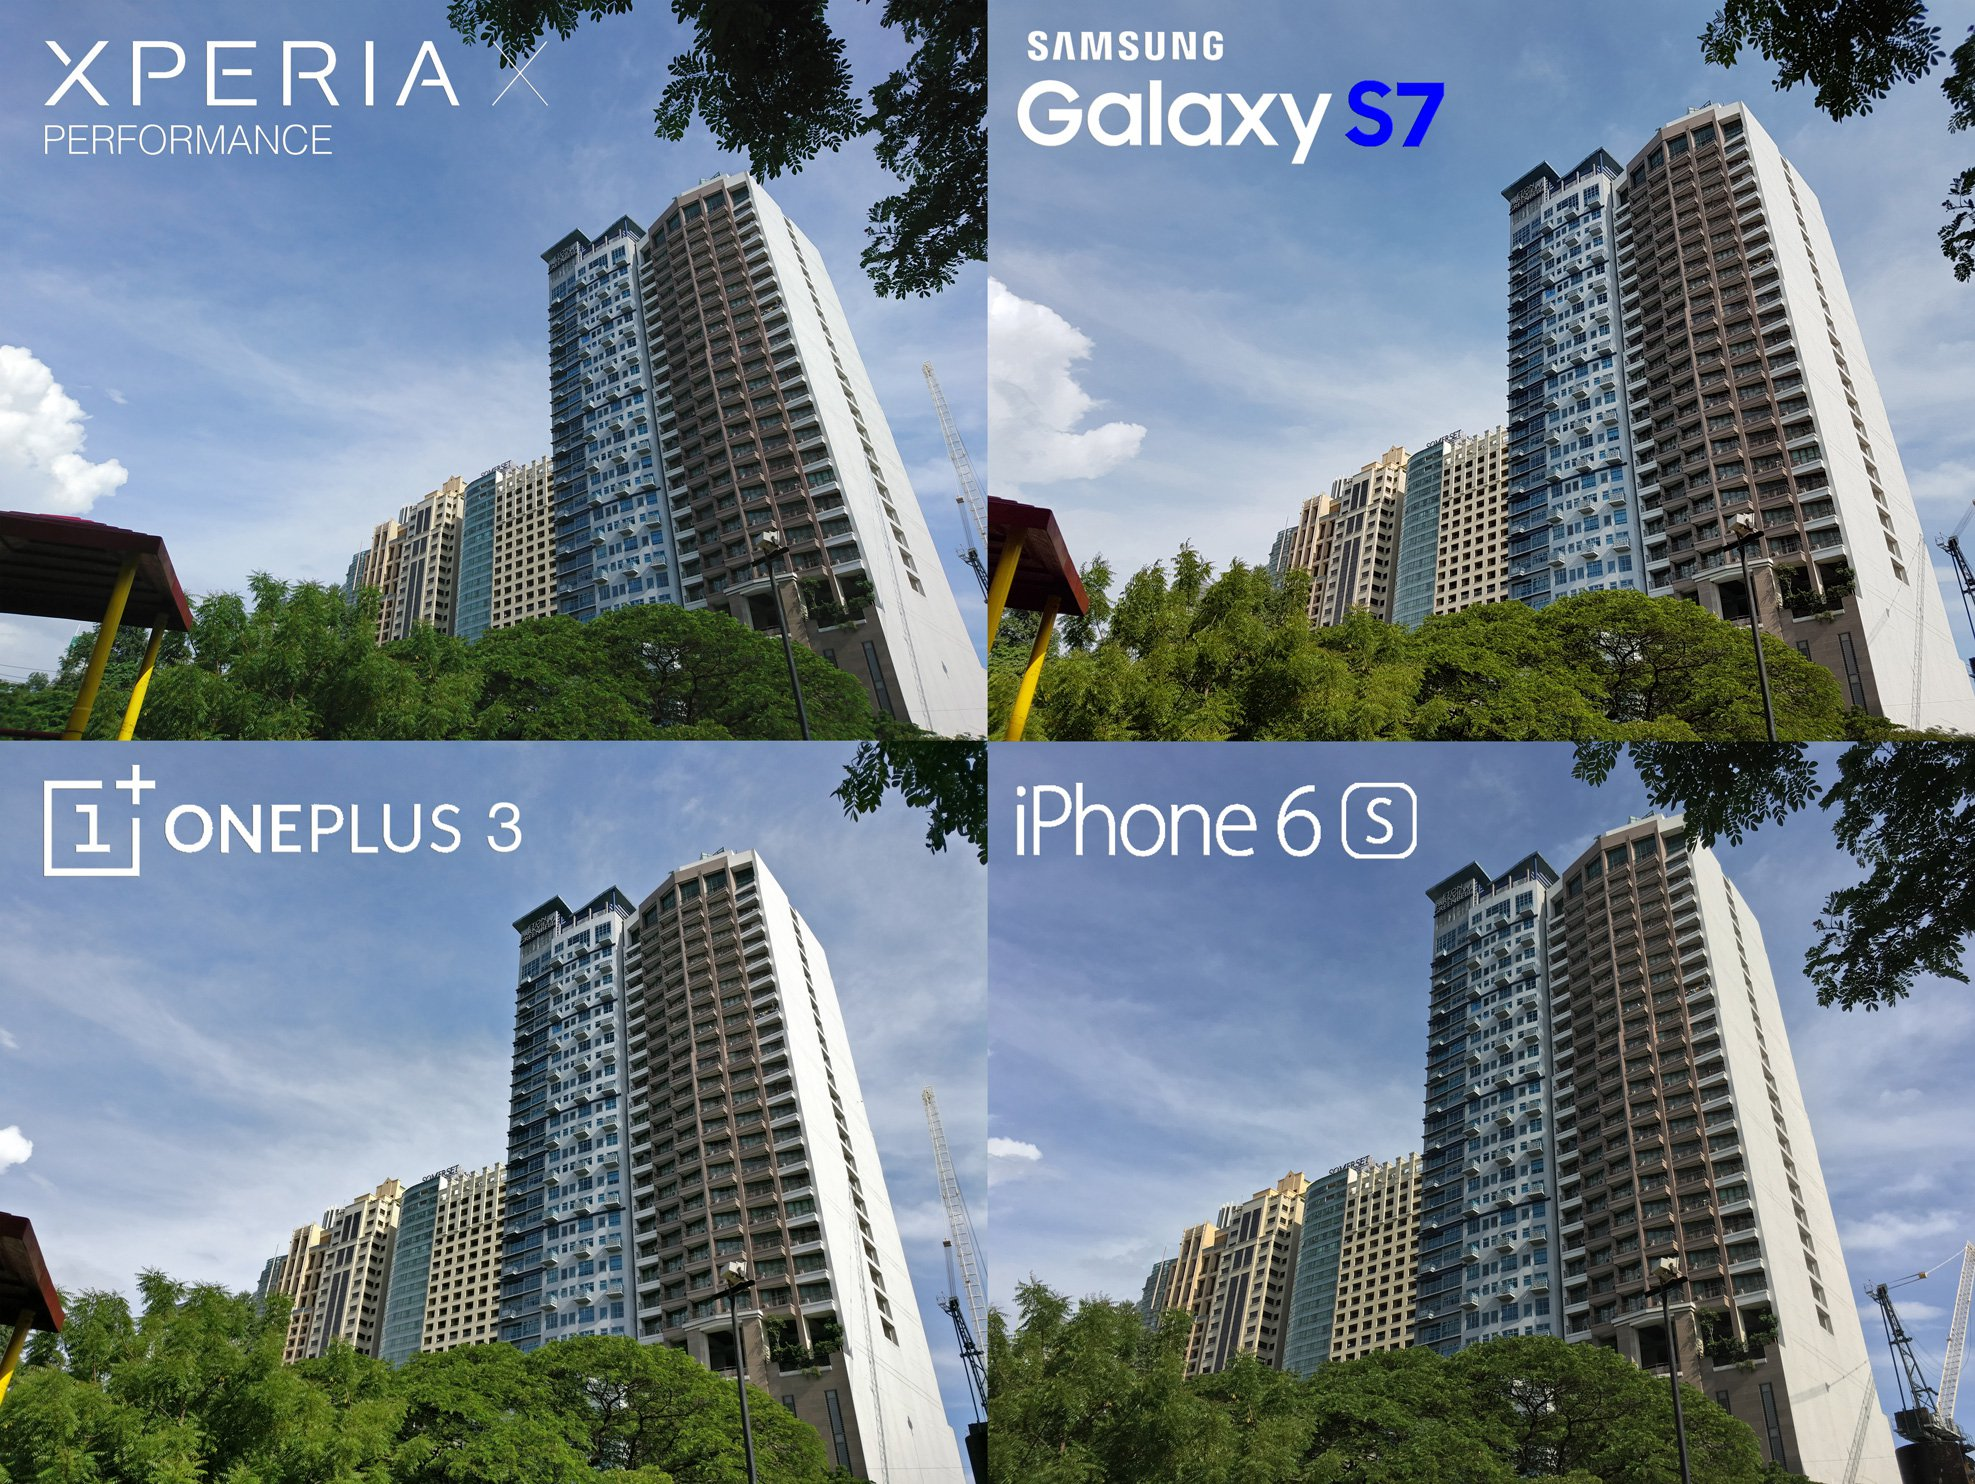 Camera Review Sony Xperia X Performance Samsung Galaxy S7 iPhone 6s 7 OnePlus 3 1